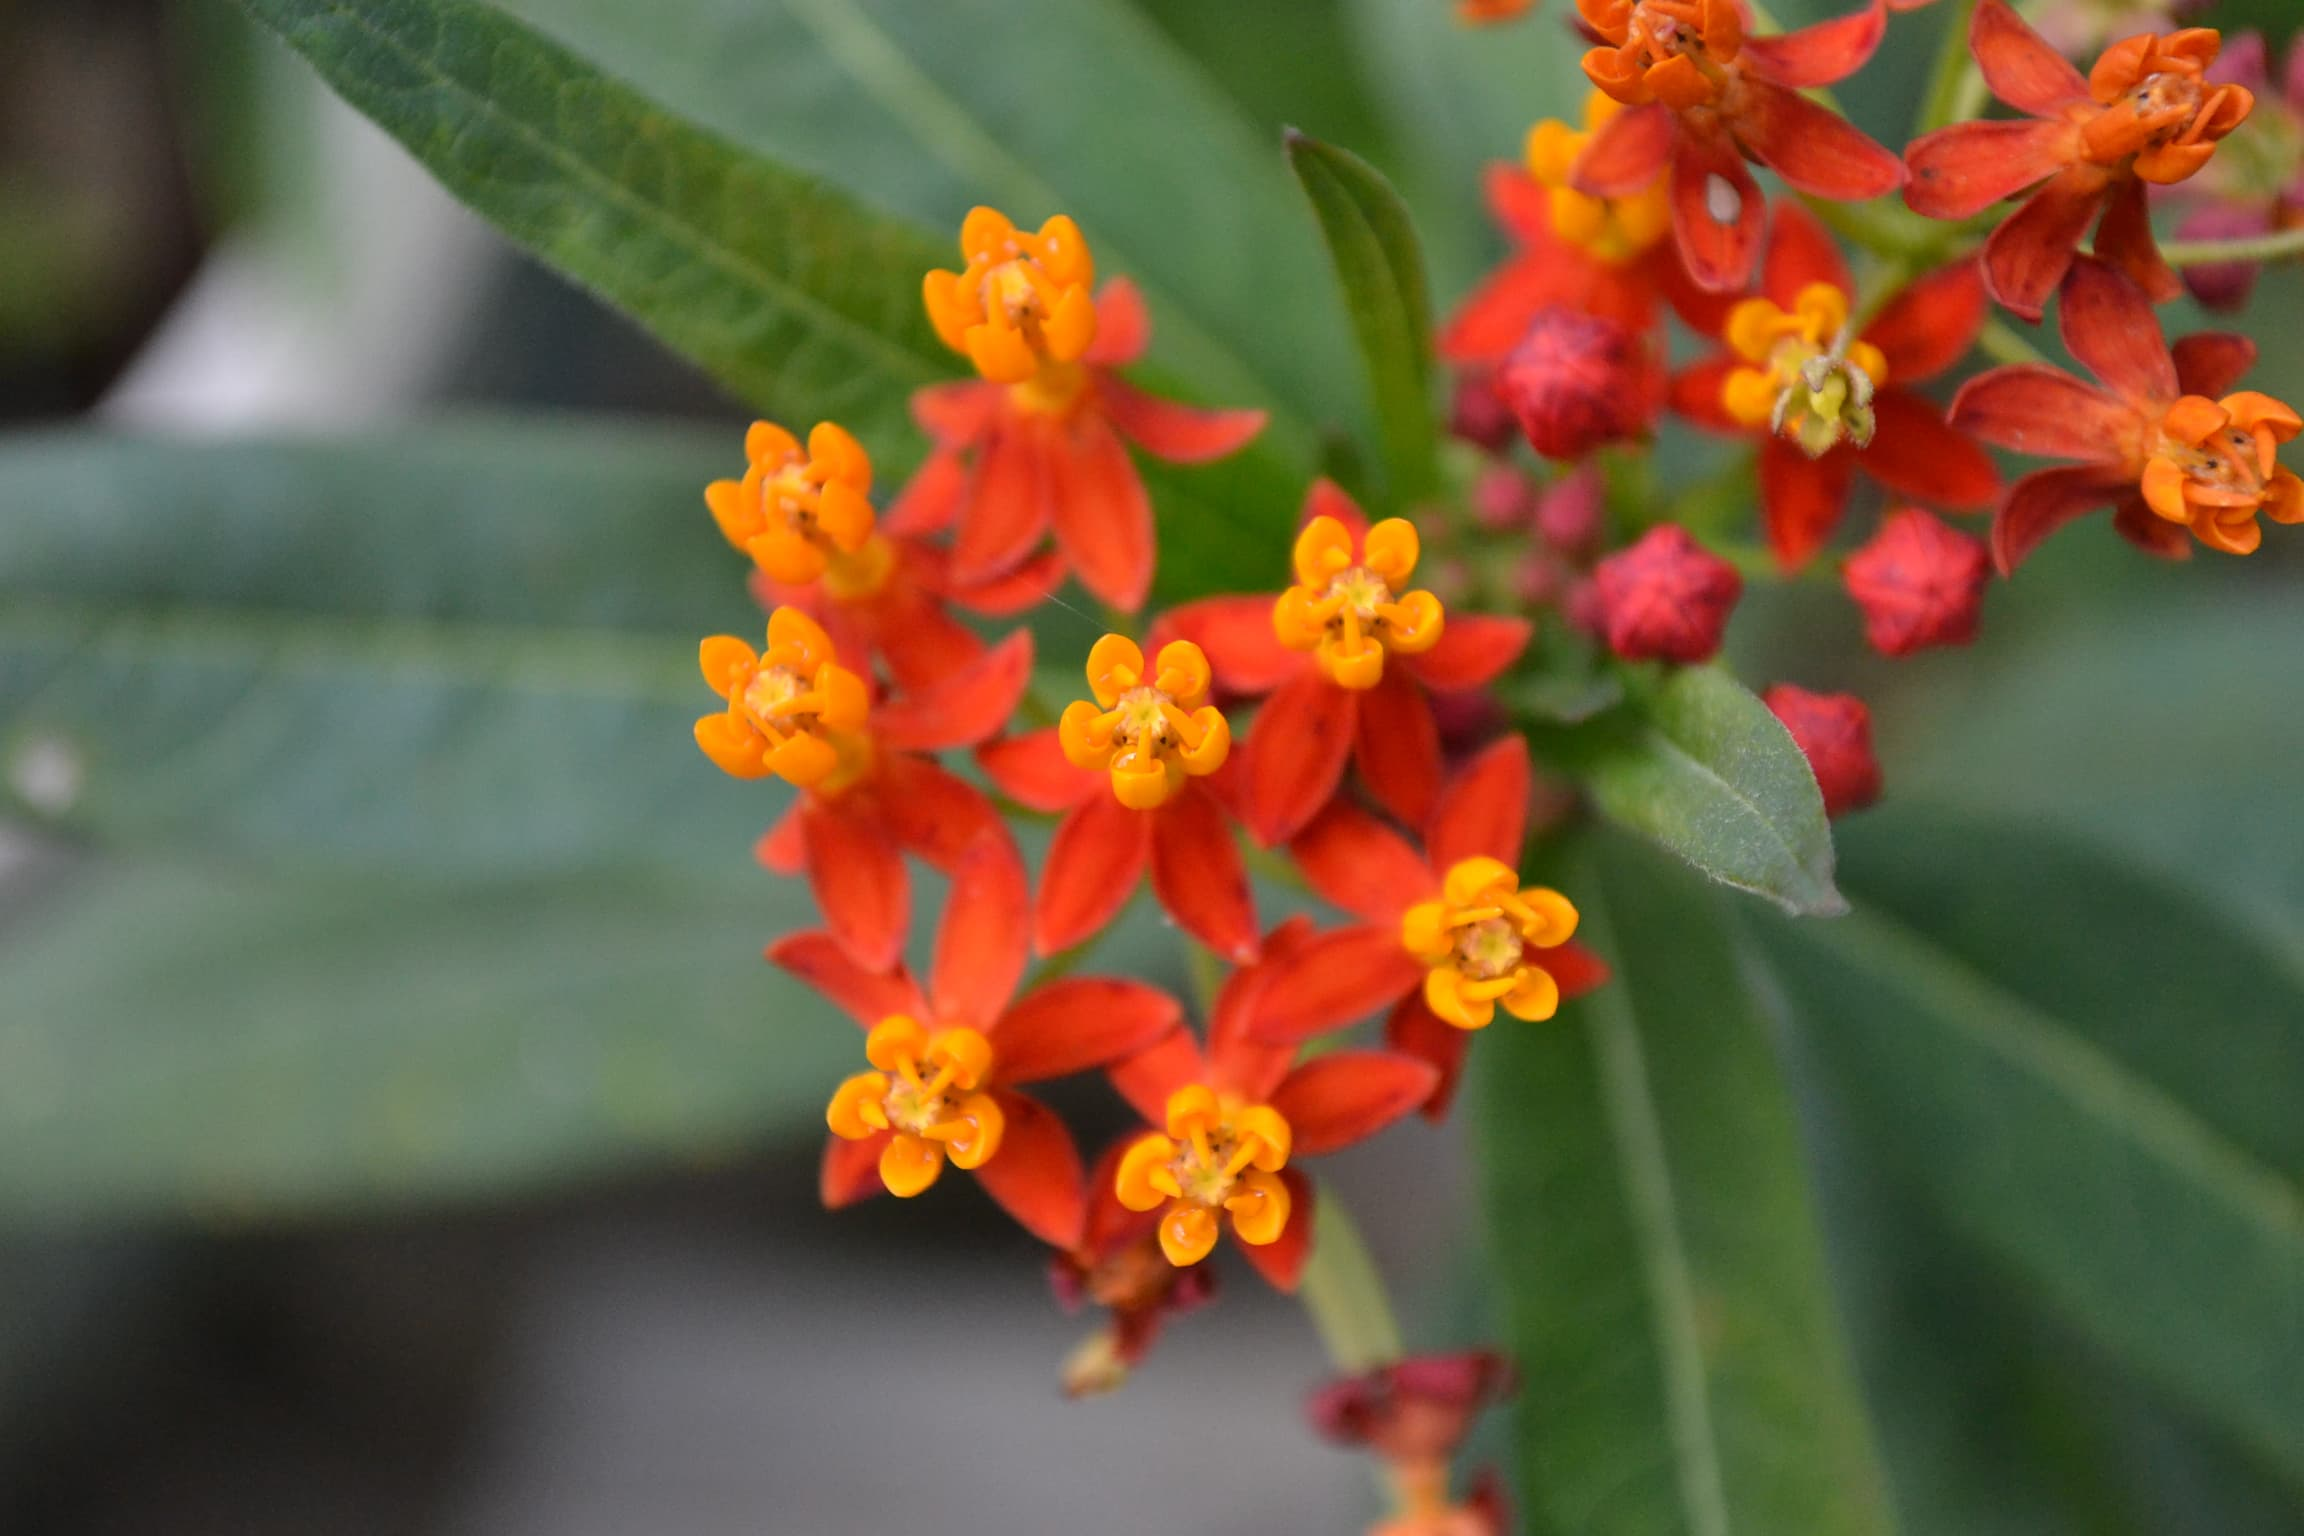 Closeup of the flowers of a Mexican milkweed or butterfly weed in my garden.